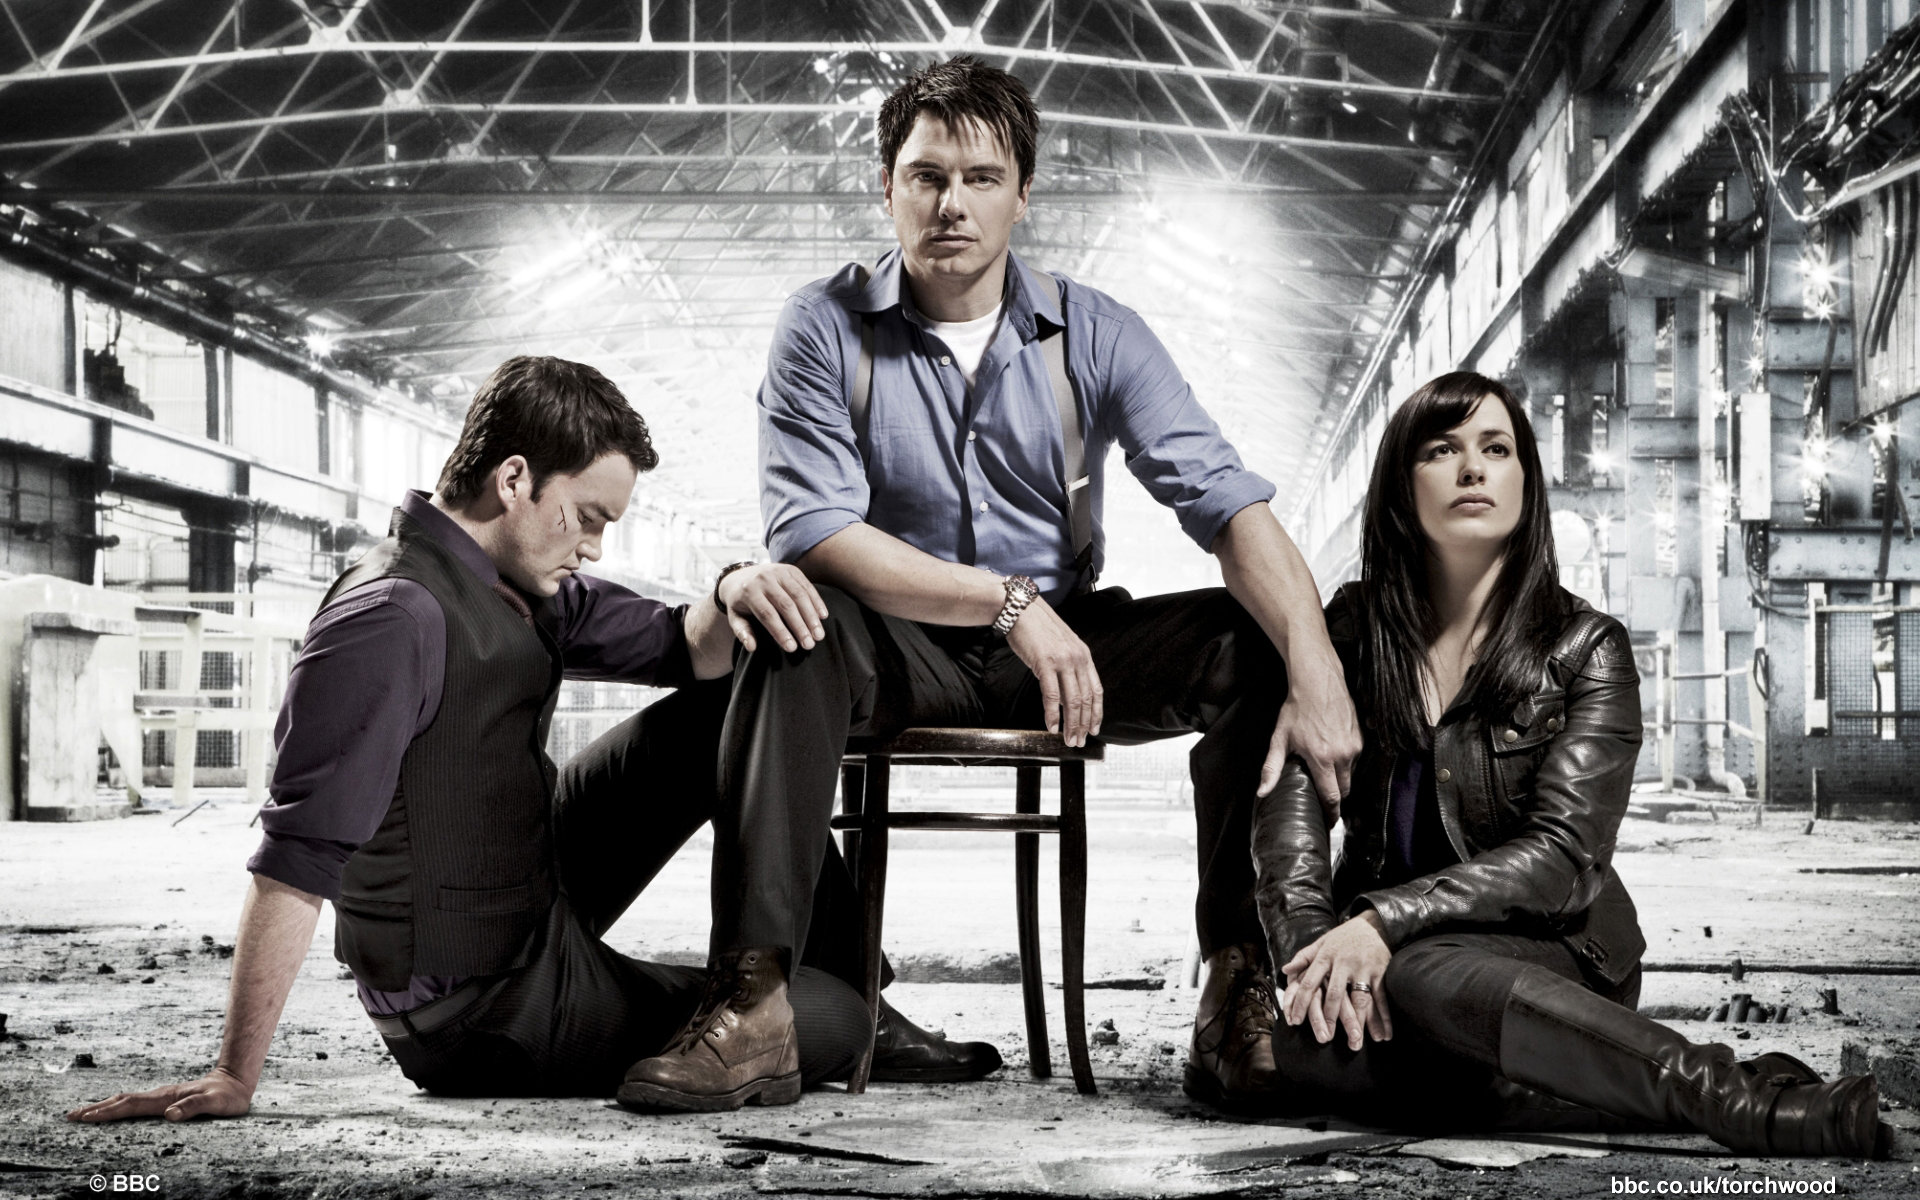 cast from Torchwood